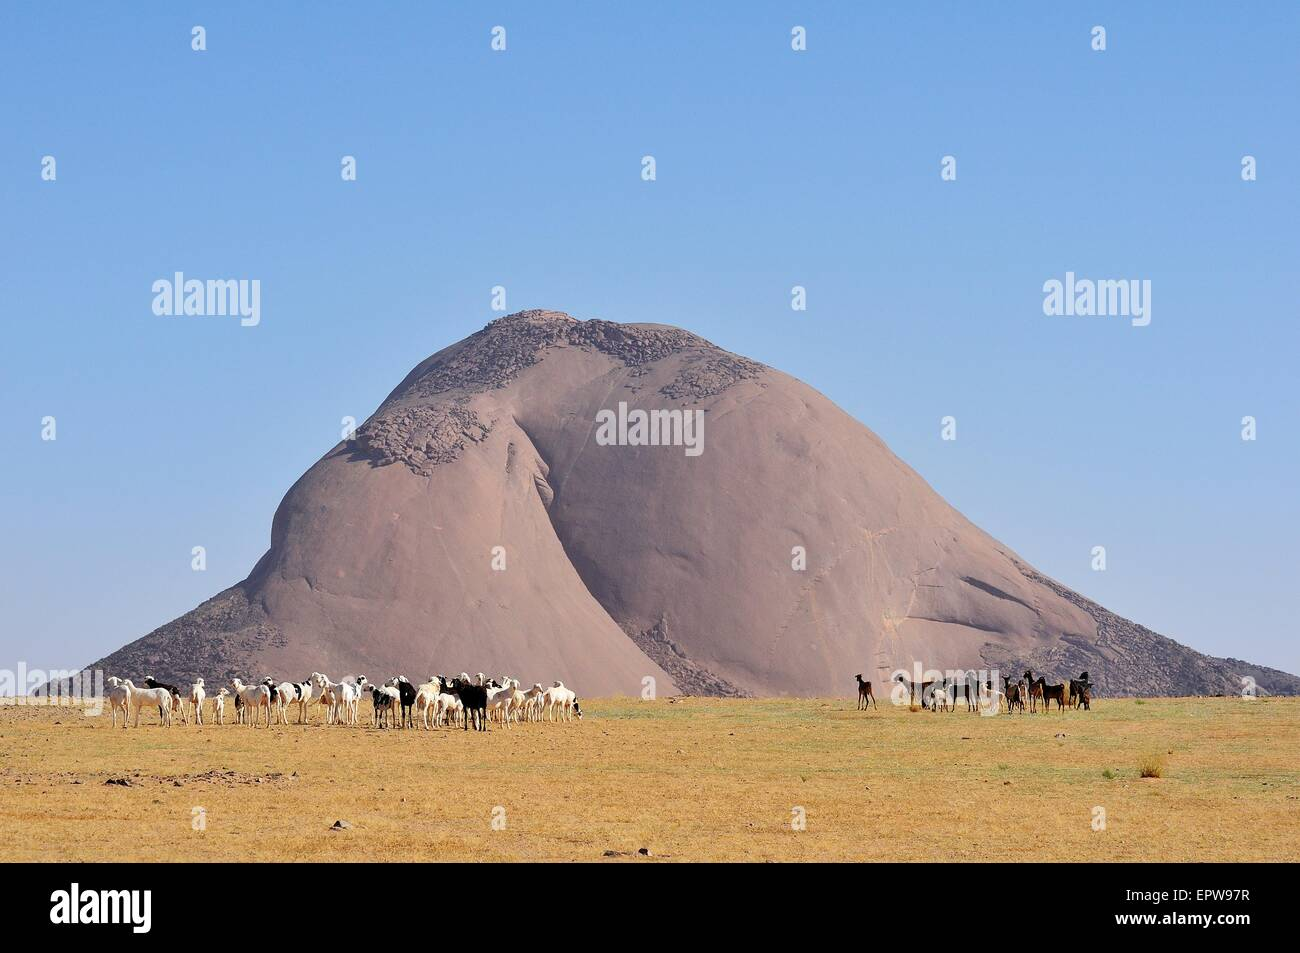 Herd of goats in front of the Aicha monolith in the flat desert, Adrar region, Mauritania - Stock Image